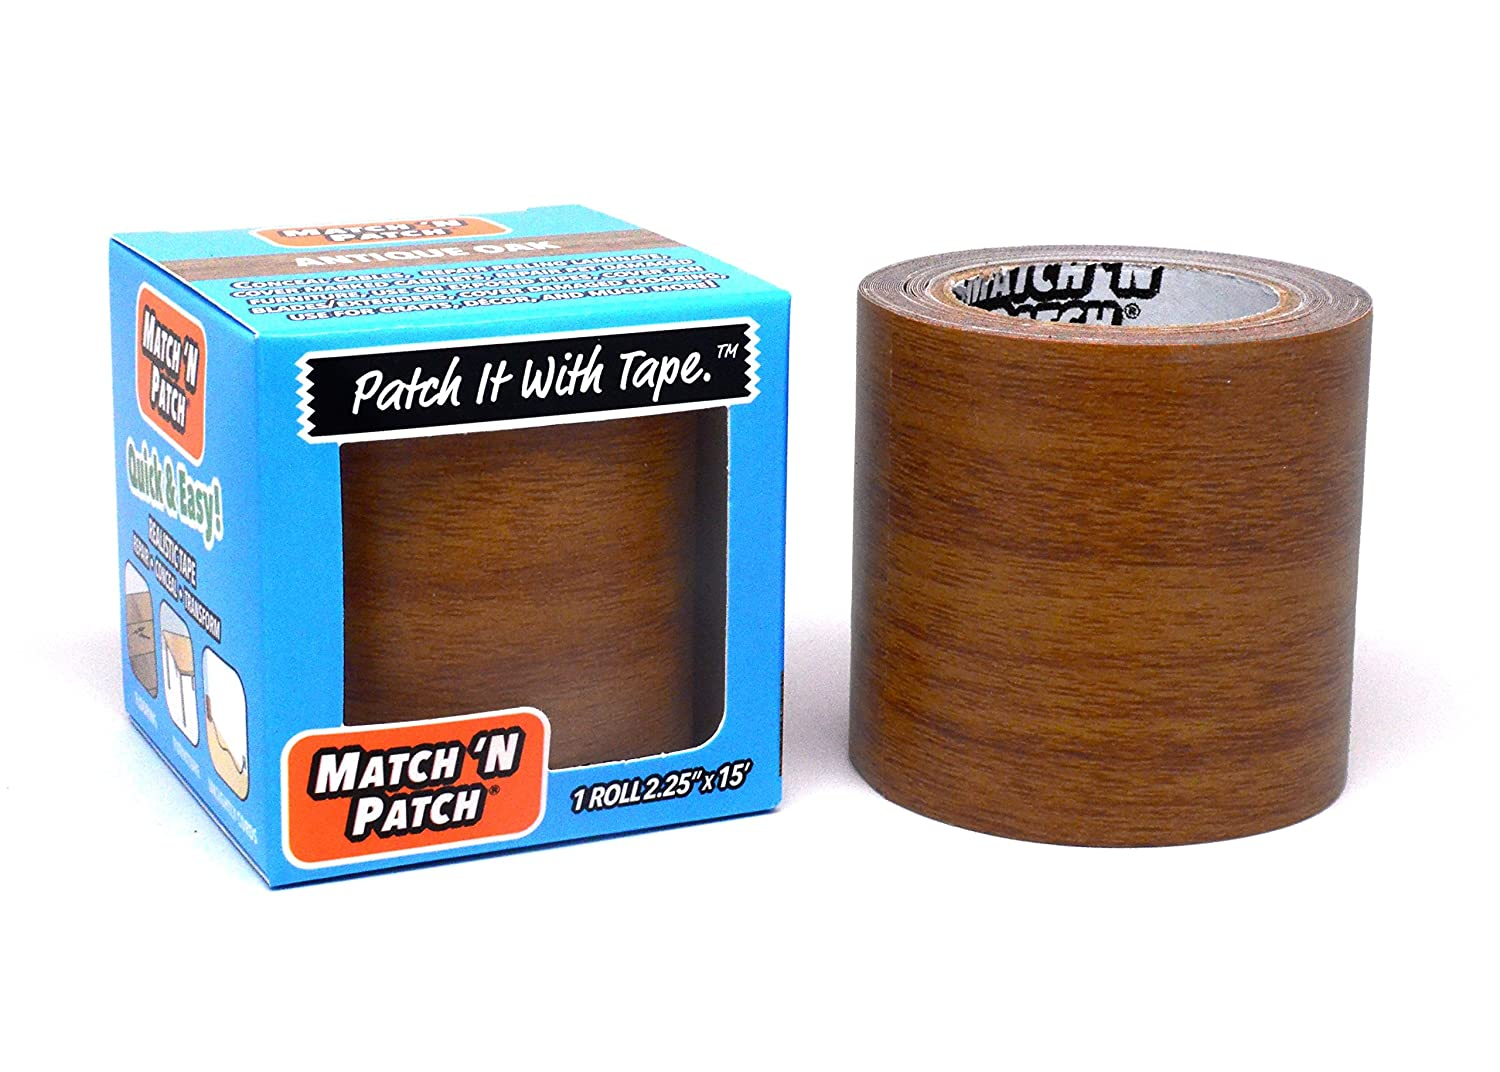 Fortis Design, Inc. Match 'N Patch Realistic Repair Tape, Antique Oak Inc. Match ' N Patch Realistic Repair Tape MNP-1520